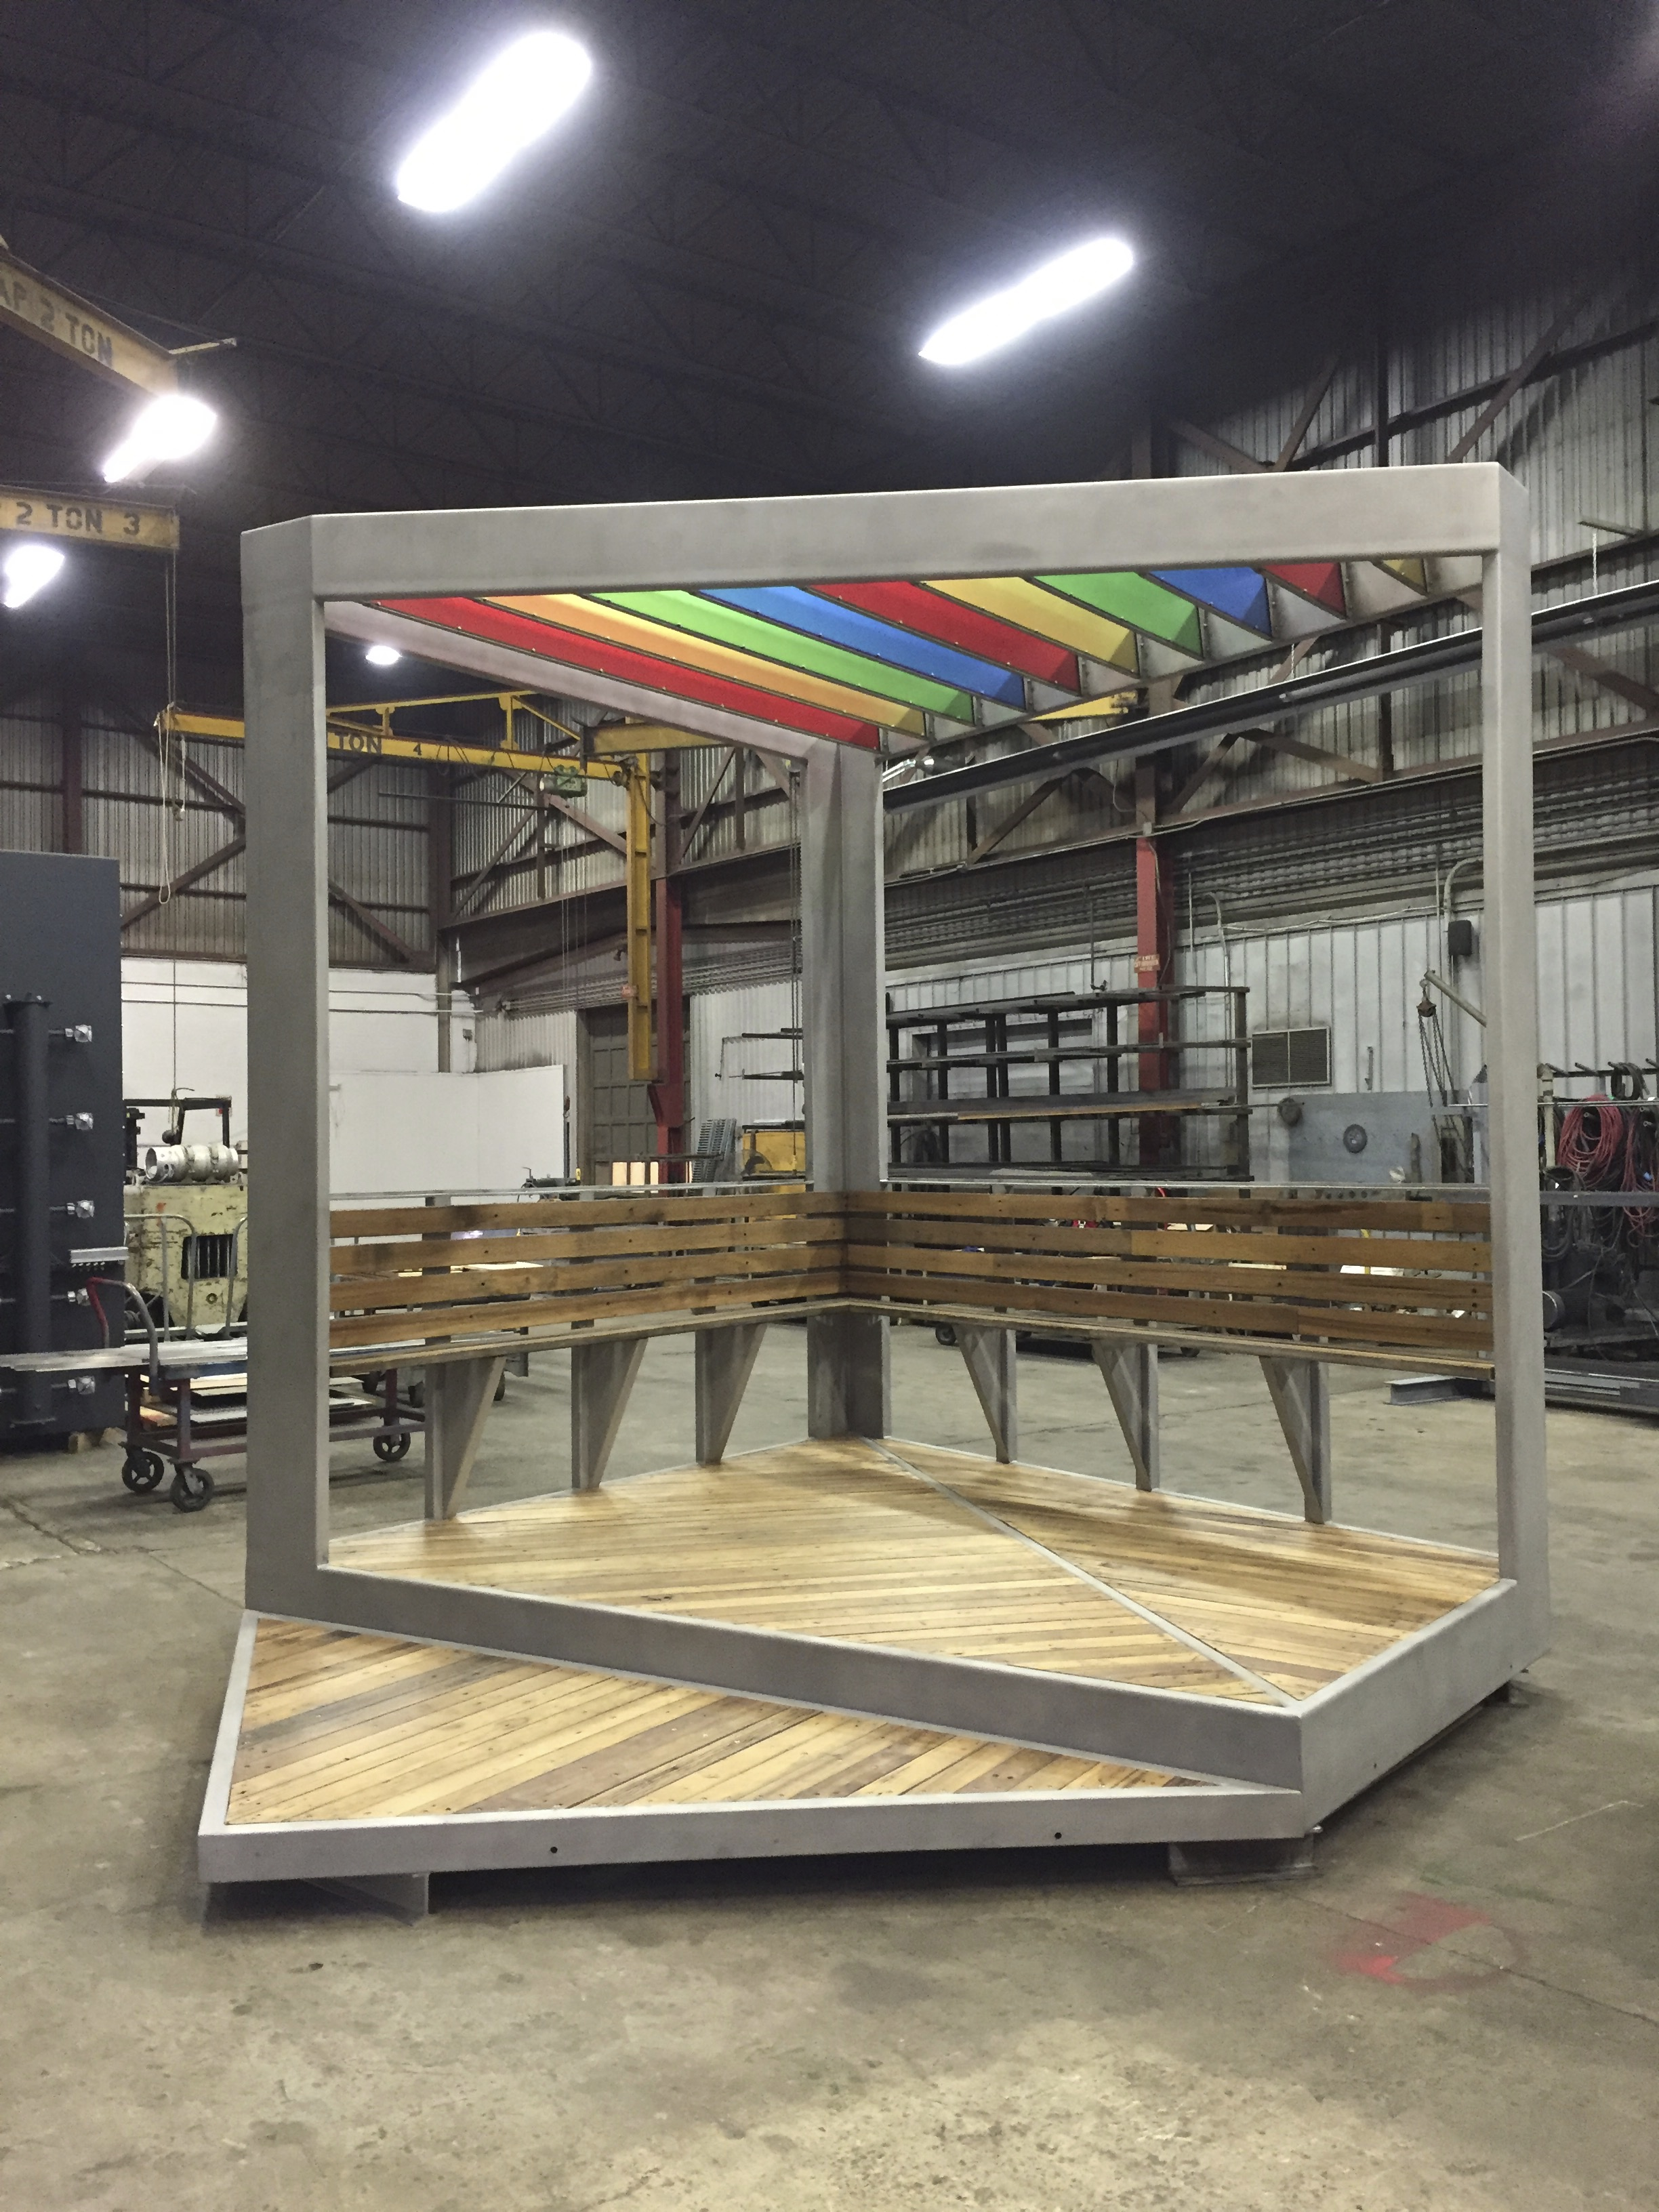 Austin Thomas Plaza Perch, 2016 Stainless Steel, wood decking, acrylic panels 15' x 11' x 12' Soon to be completed stainless steel gazebo-like structure, commissioned by New York City's Department of Cultural Affairs Percent for Art Program. Plaza Perch will feature a colorful acrylic trellised roof and bench for the newly built Humboldt Plaza in East Williamsburg, Brooklyn, NY along Moore Street directly in front of the Moore Street Market. Plaza Perch will be the focal point of the plaza.